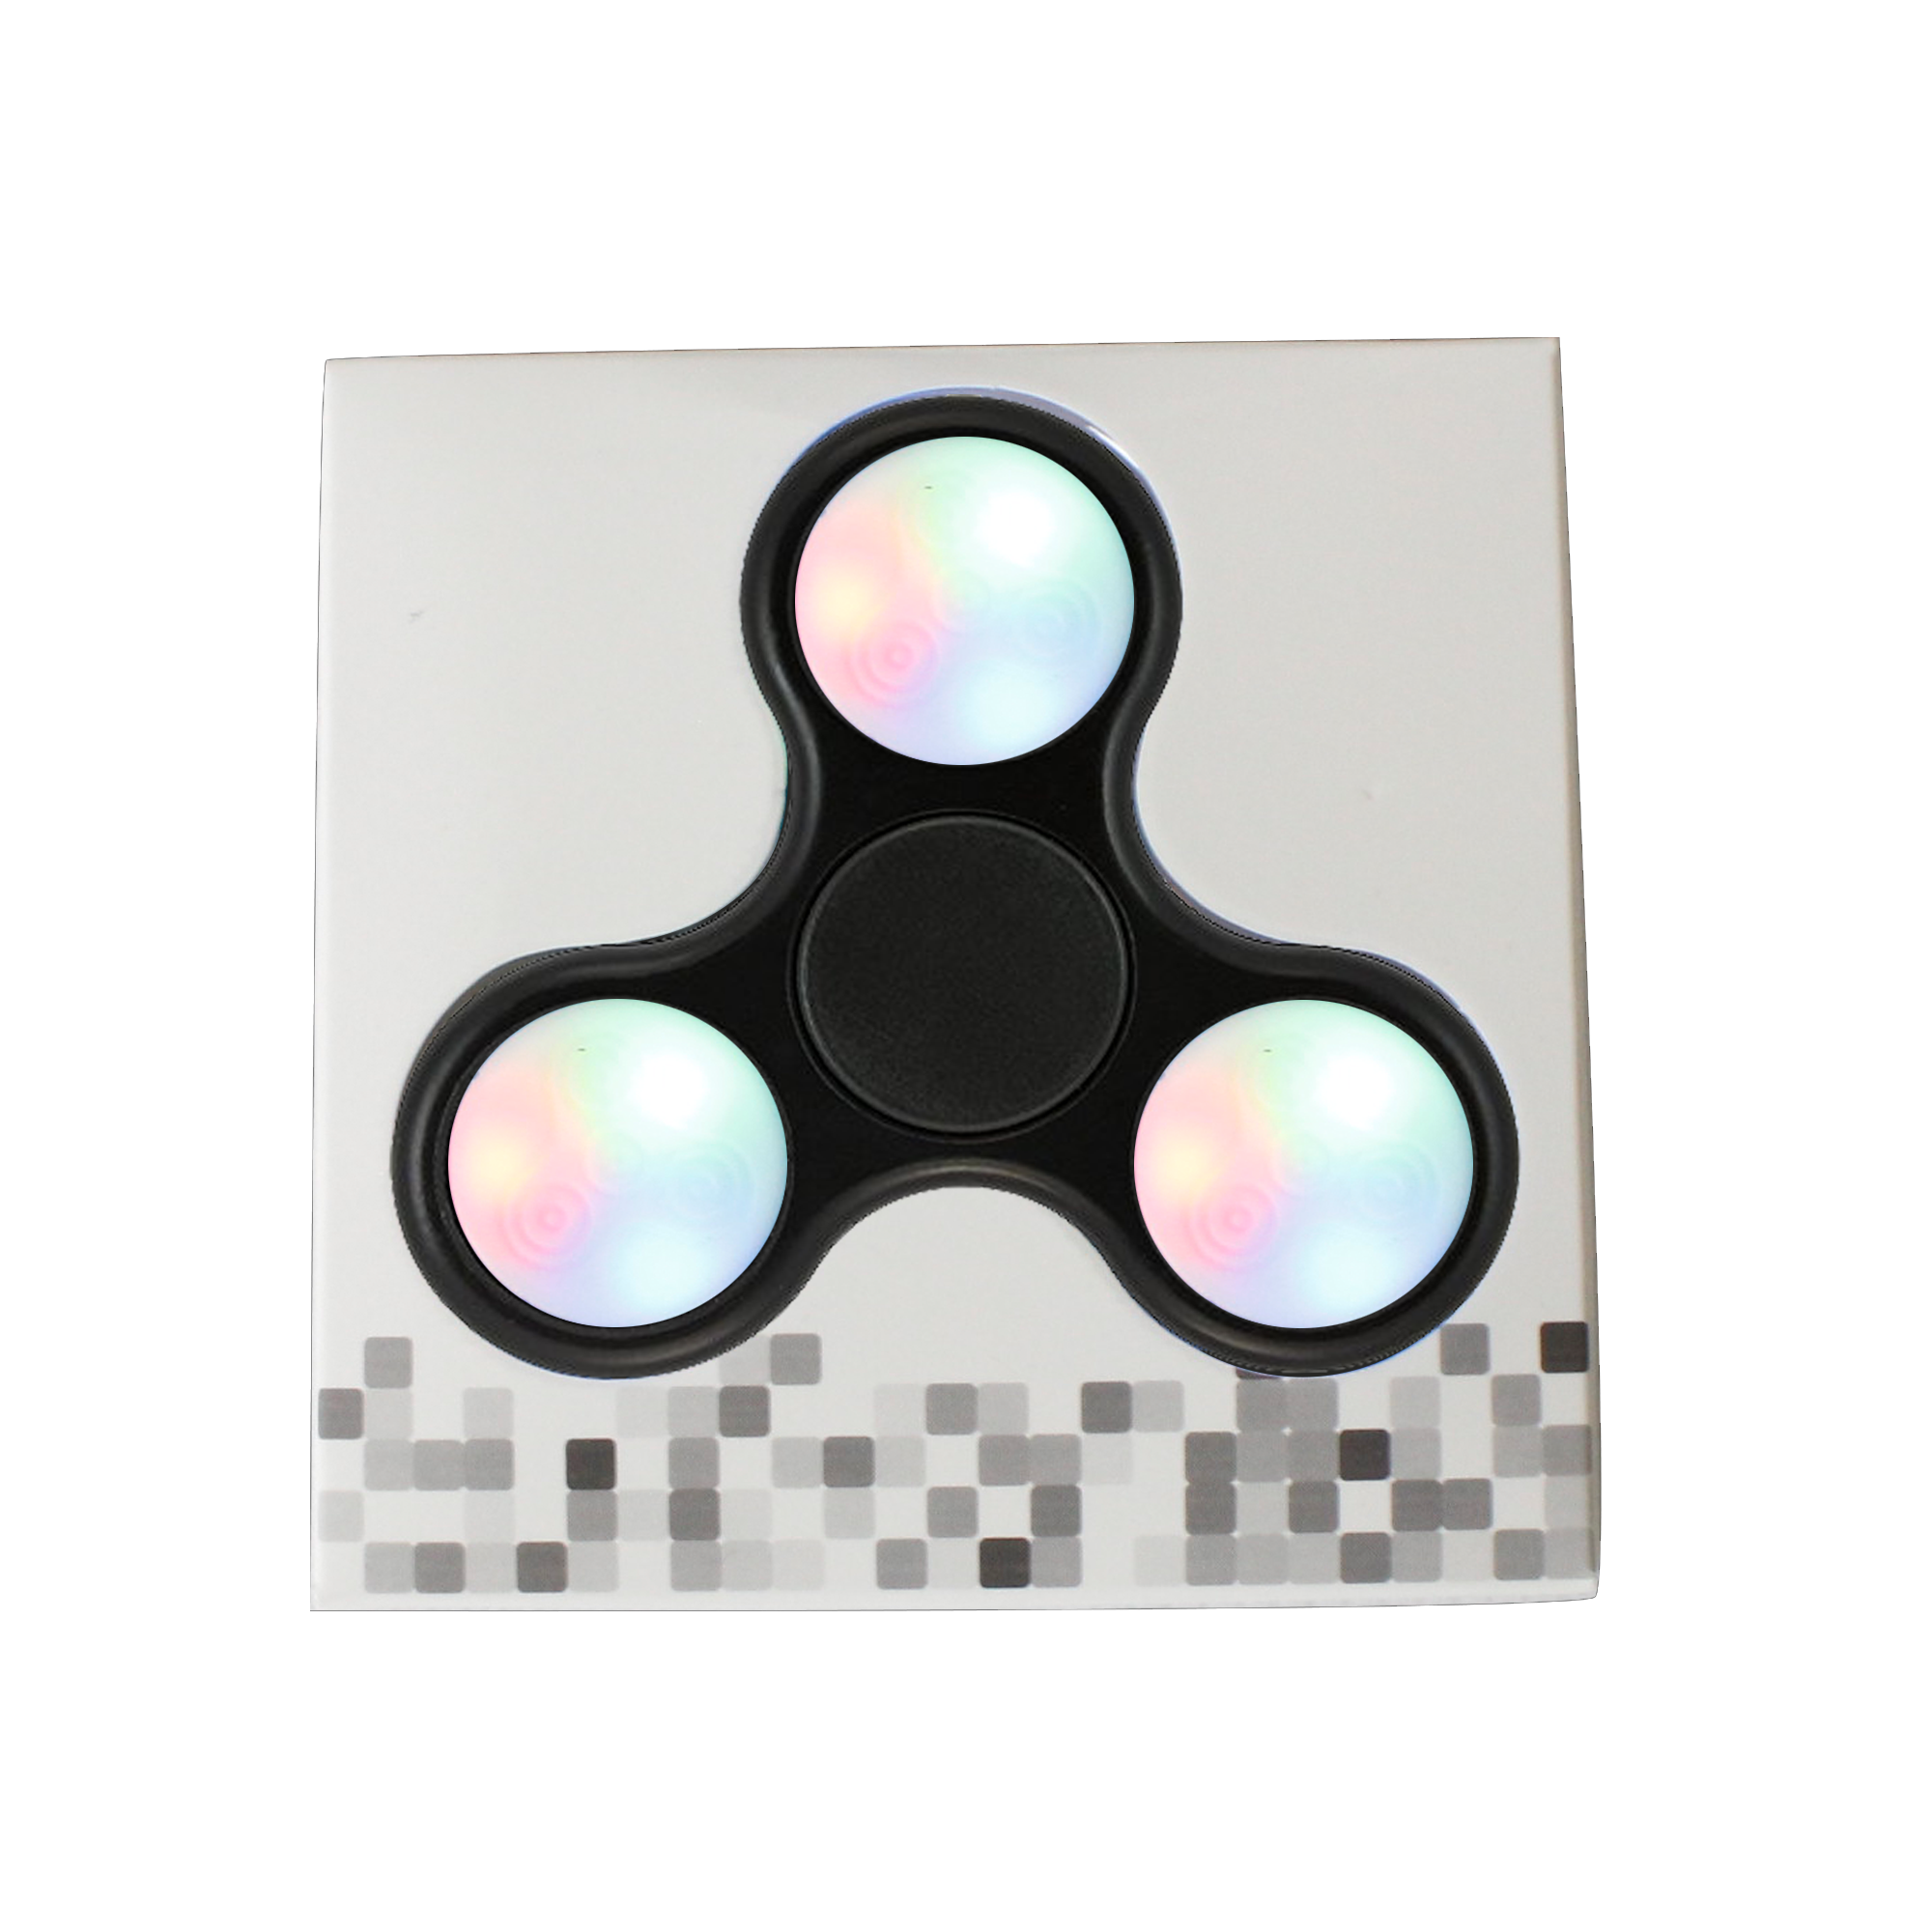 LED Push Button Finger Spinner with 9 LEDs - Black